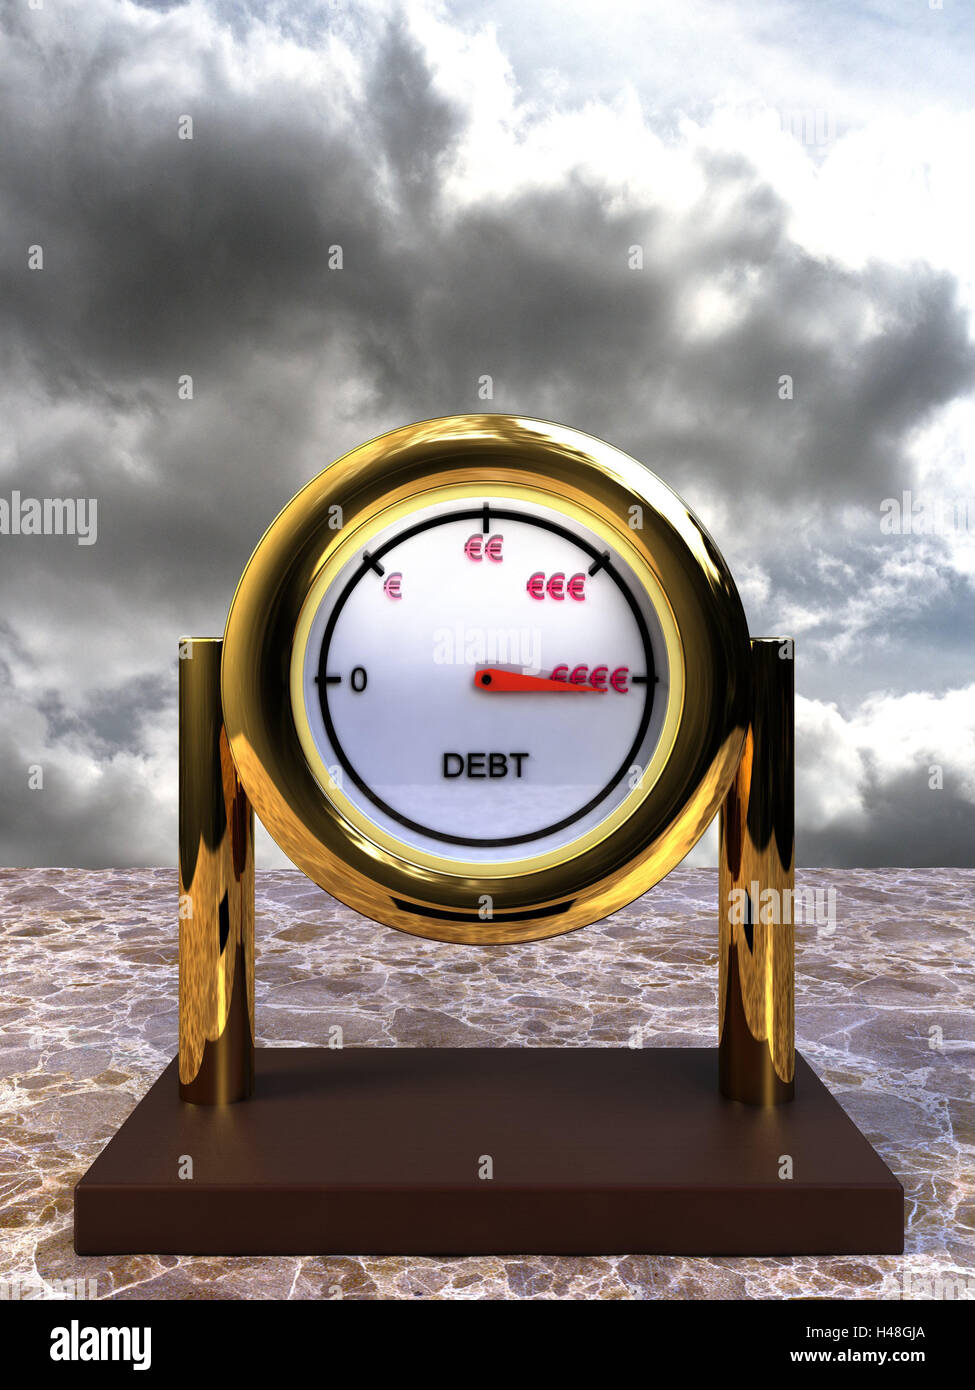 Computer graphics, debt clock, display, debt position, thunderstorm heaven, heaven, thunderstorm, vertical format, - Stock Image